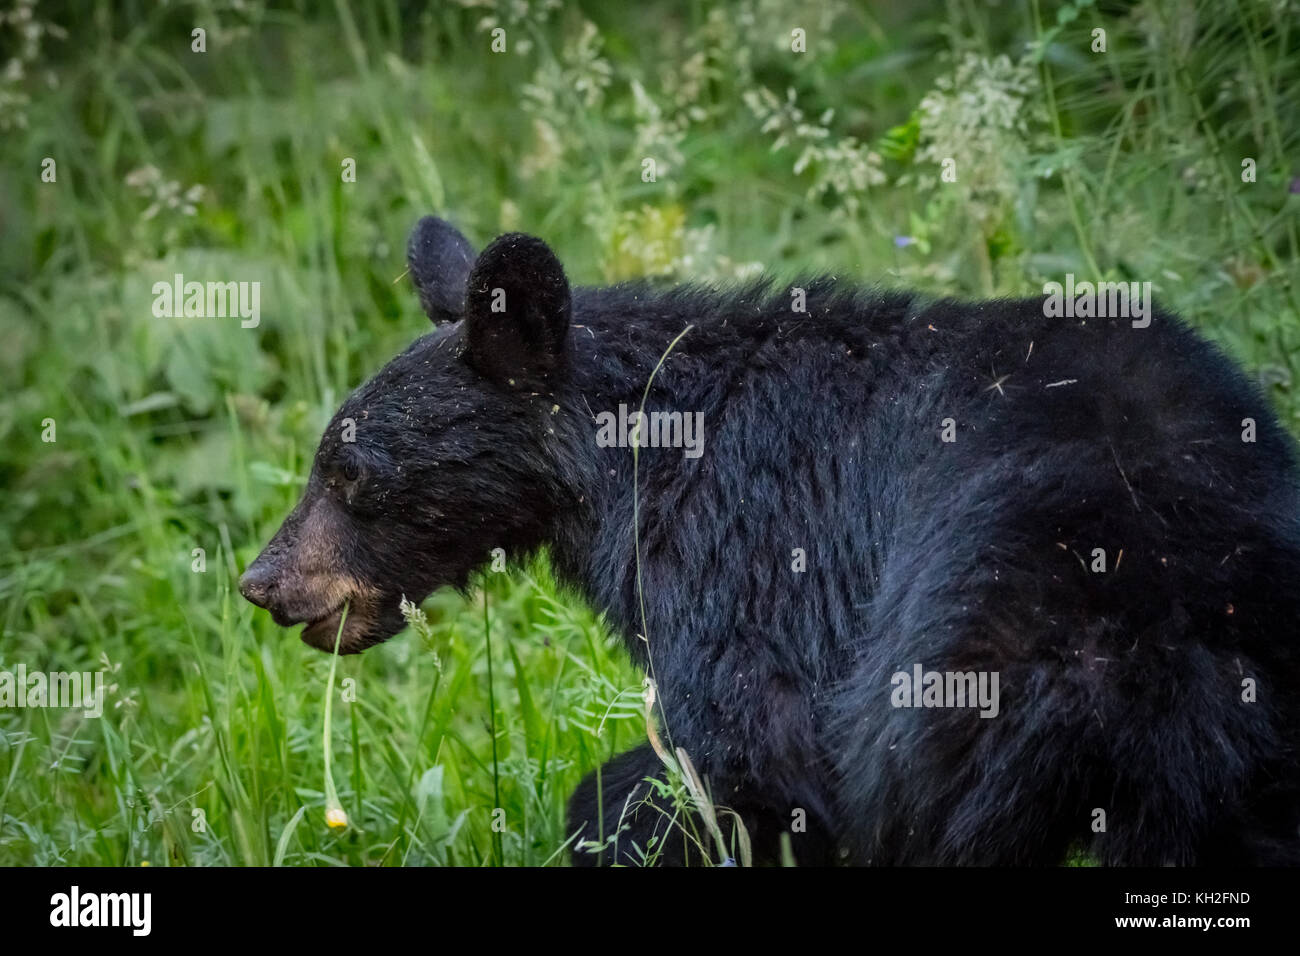 Black Bear Walks Through Thick Grass in forest clearing - Stock Image